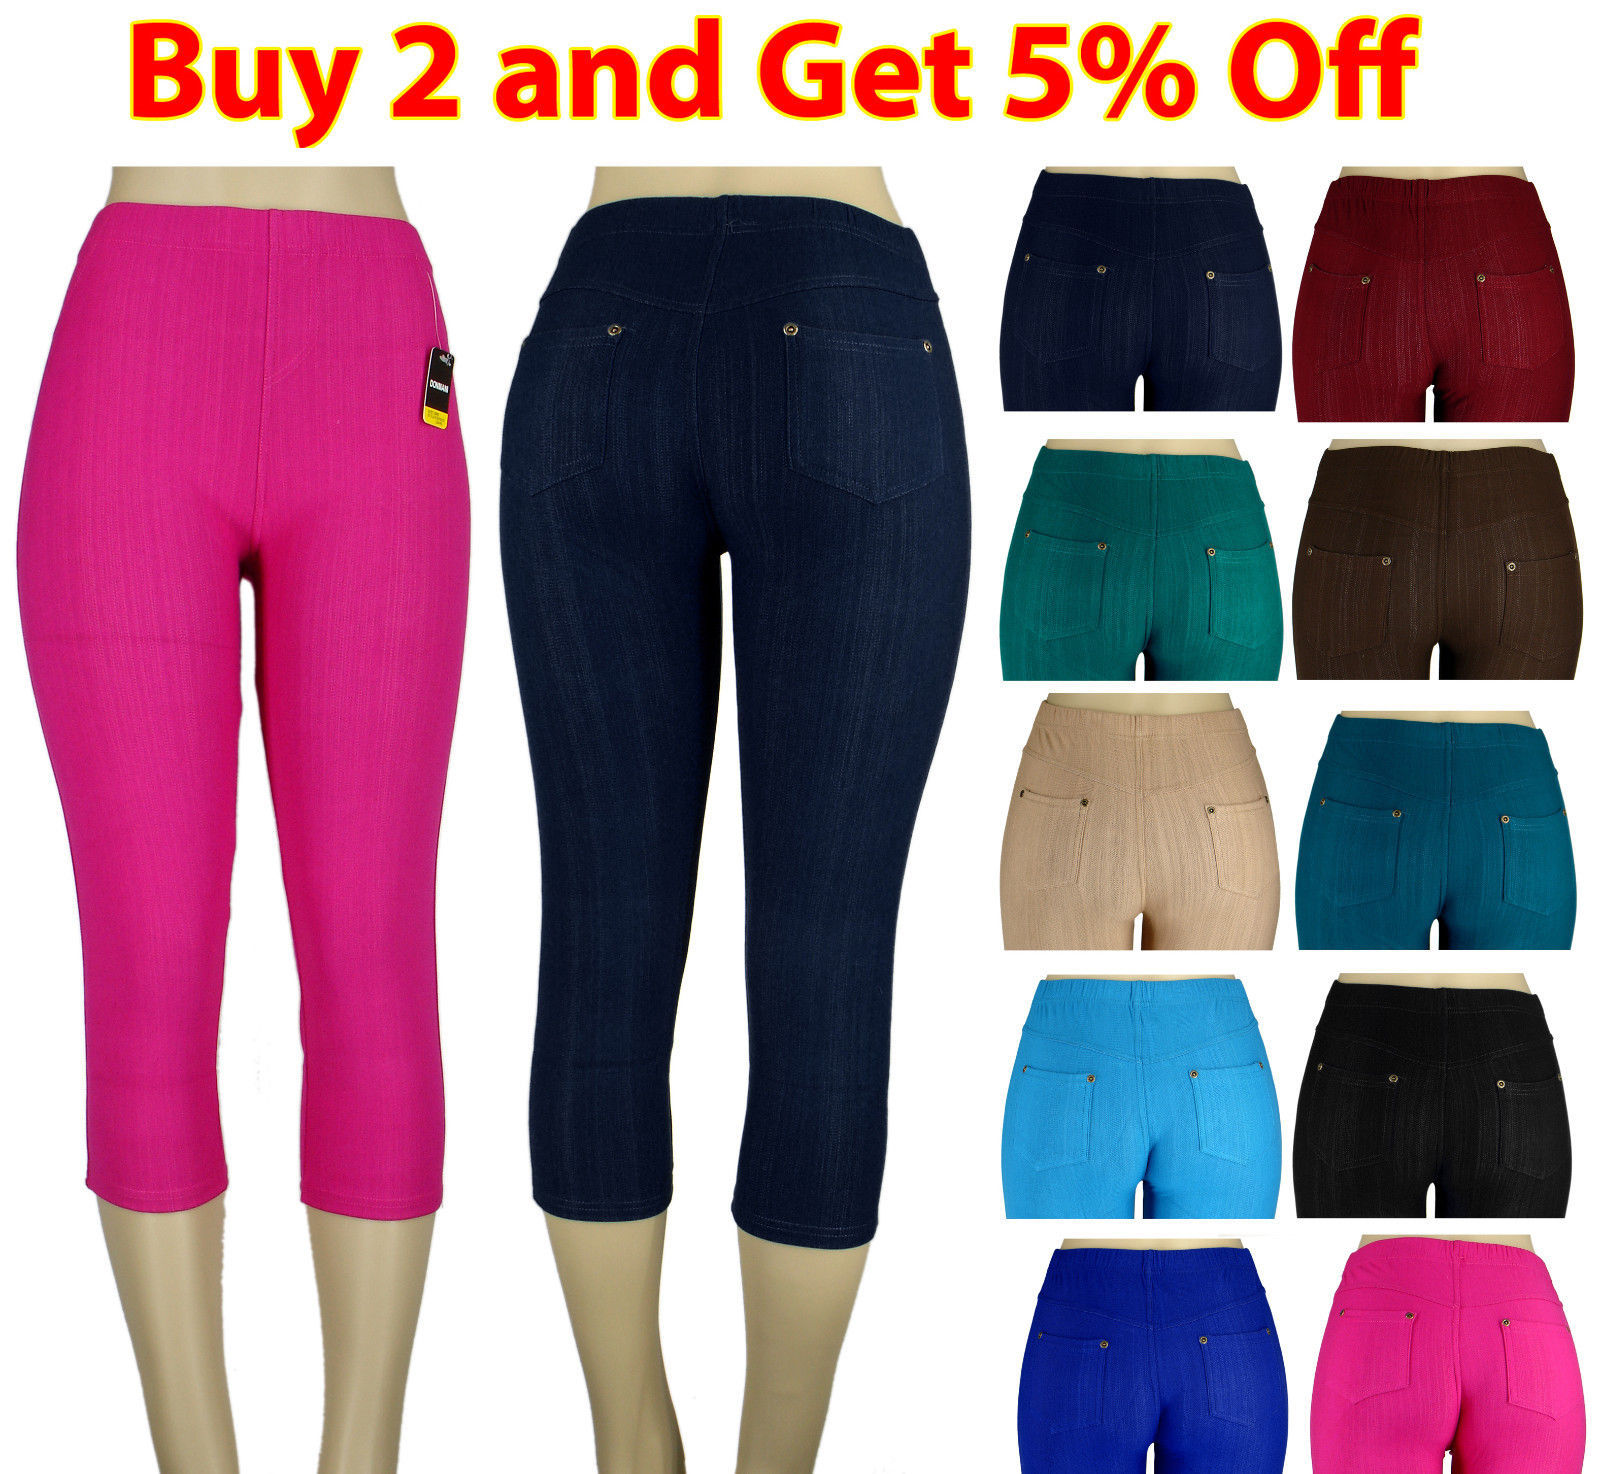 25b1771a63e6a S l1600. S l1600. Previous. NEW WOMEN SKINNY COLORFUL CAPRI JEGGINGS  STRETCHY SEXY PANTS SOFT LEGGINGS JEANS